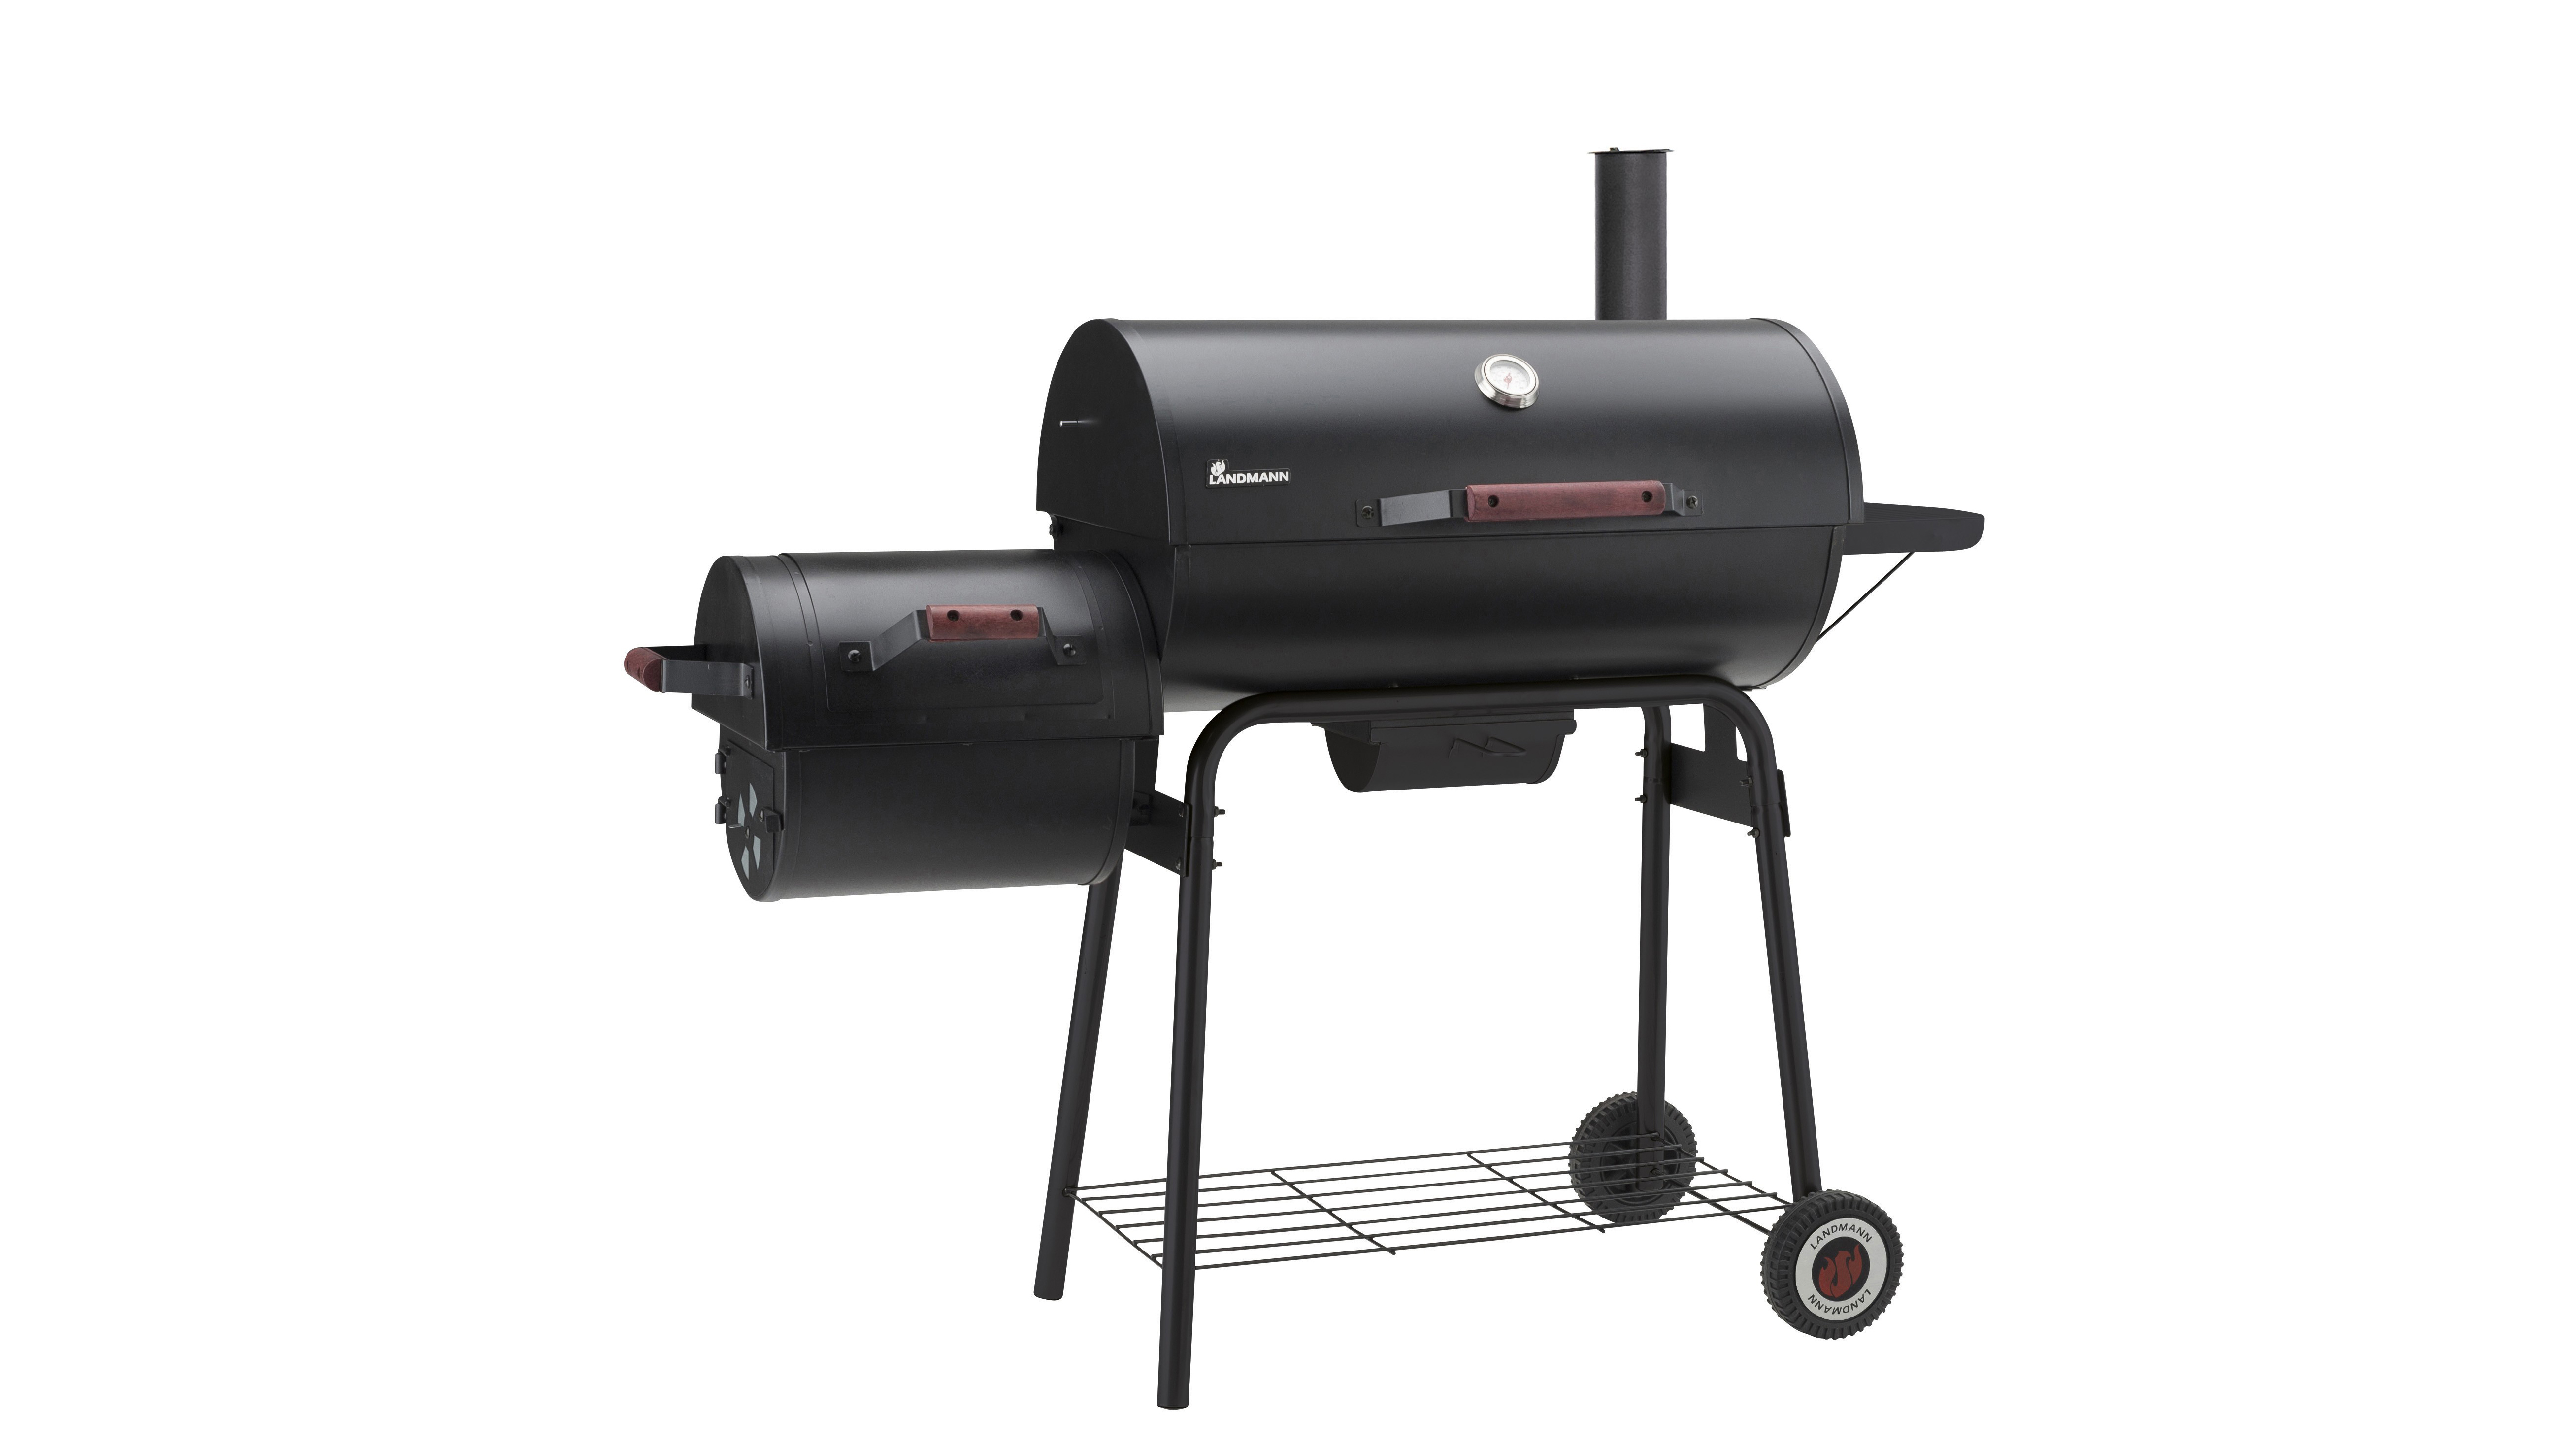 barbecue blooma barbecue andaloucia barbecue gaz brleurs sur chariot bbq westpoint blooma. Black Bedroom Furniture Sets. Home Design Ideas